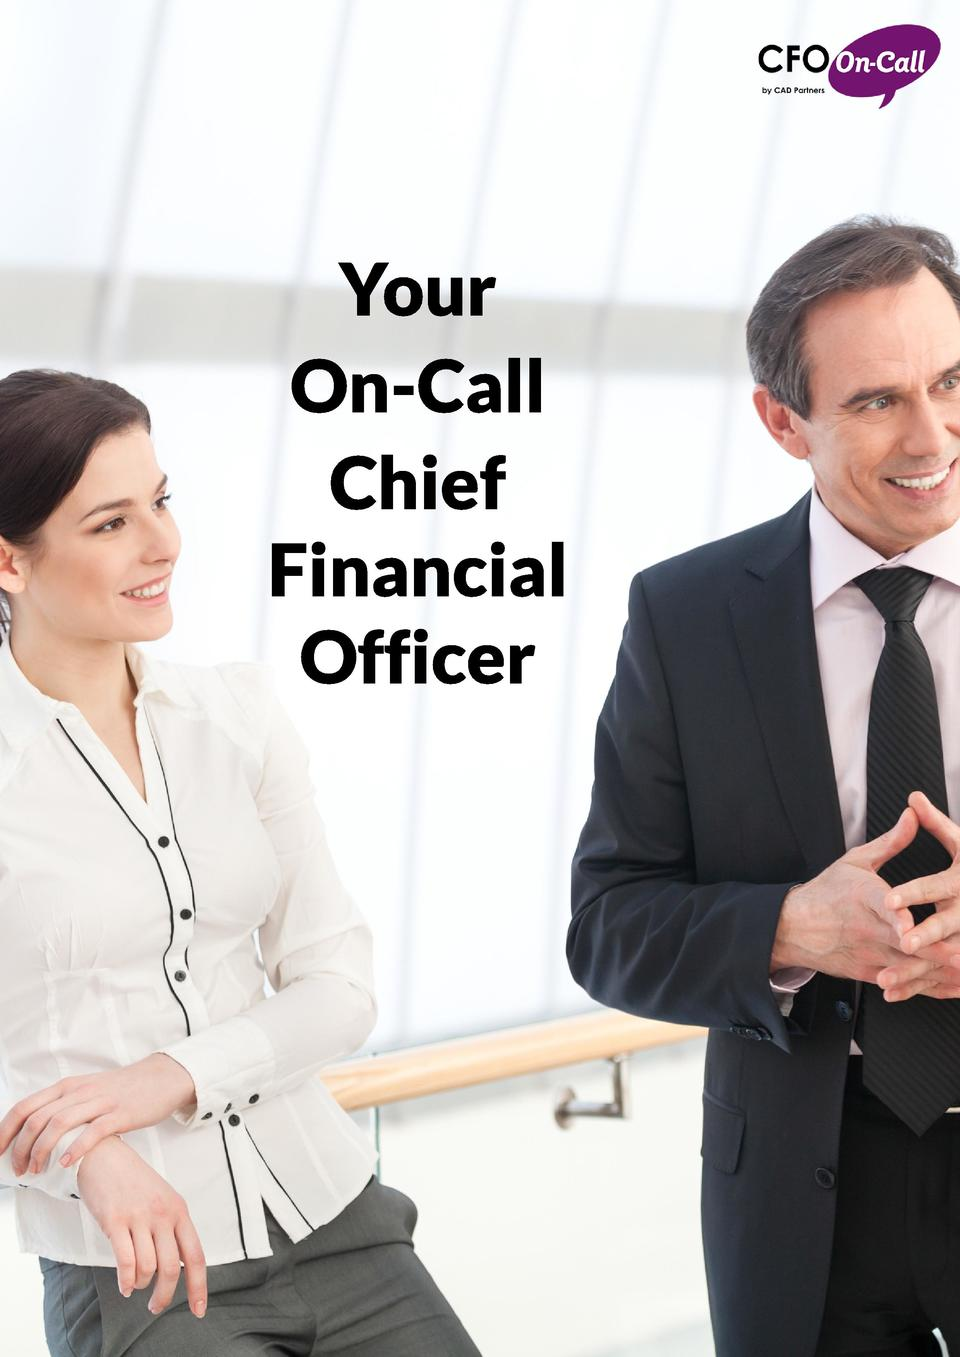 Your On-Call Chief Financial Officer